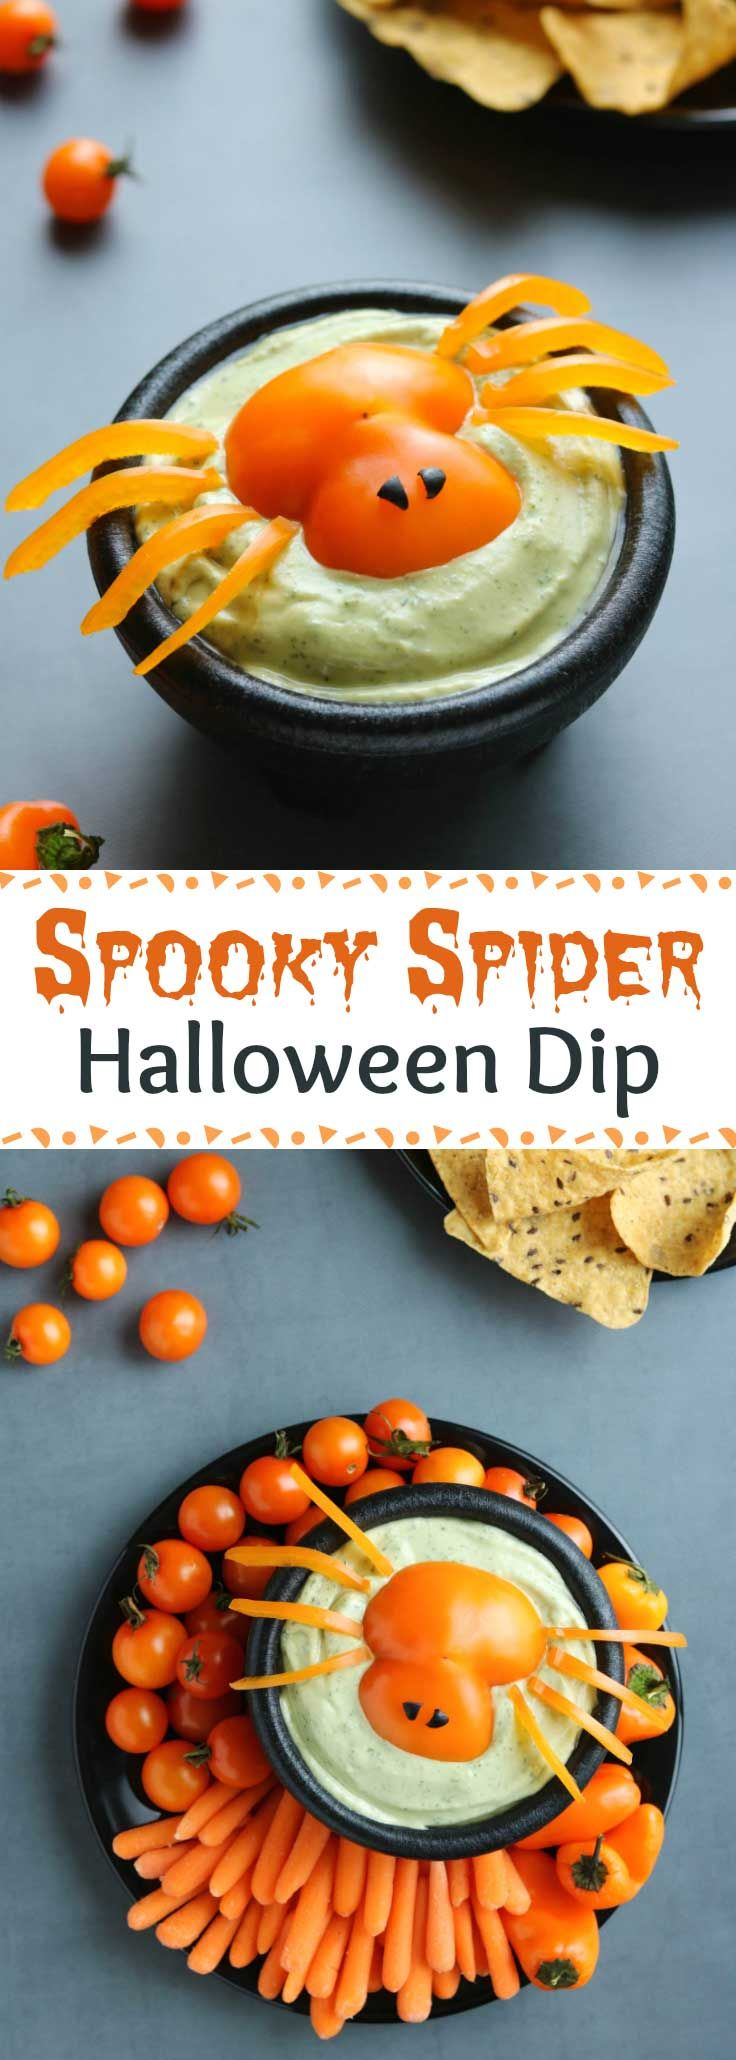 """Quick and easy Halloween idea! A total hit at Halloween parties, on appetizer buffets, or even as a fun after-school snack before trick-or-treating! This adorable """"Spooky Spider"""" Halloween Appetizer Dip idea works with practically any dip – from ranch dip to other vegetable dips, even hummus or a 7-layer dip. Darling for Halloween vegetable trays, it makes a great Halloween centerpiece! Bonus: this Halloween Dip recipe idea is a HEALTHY Halloween recipe, too! 